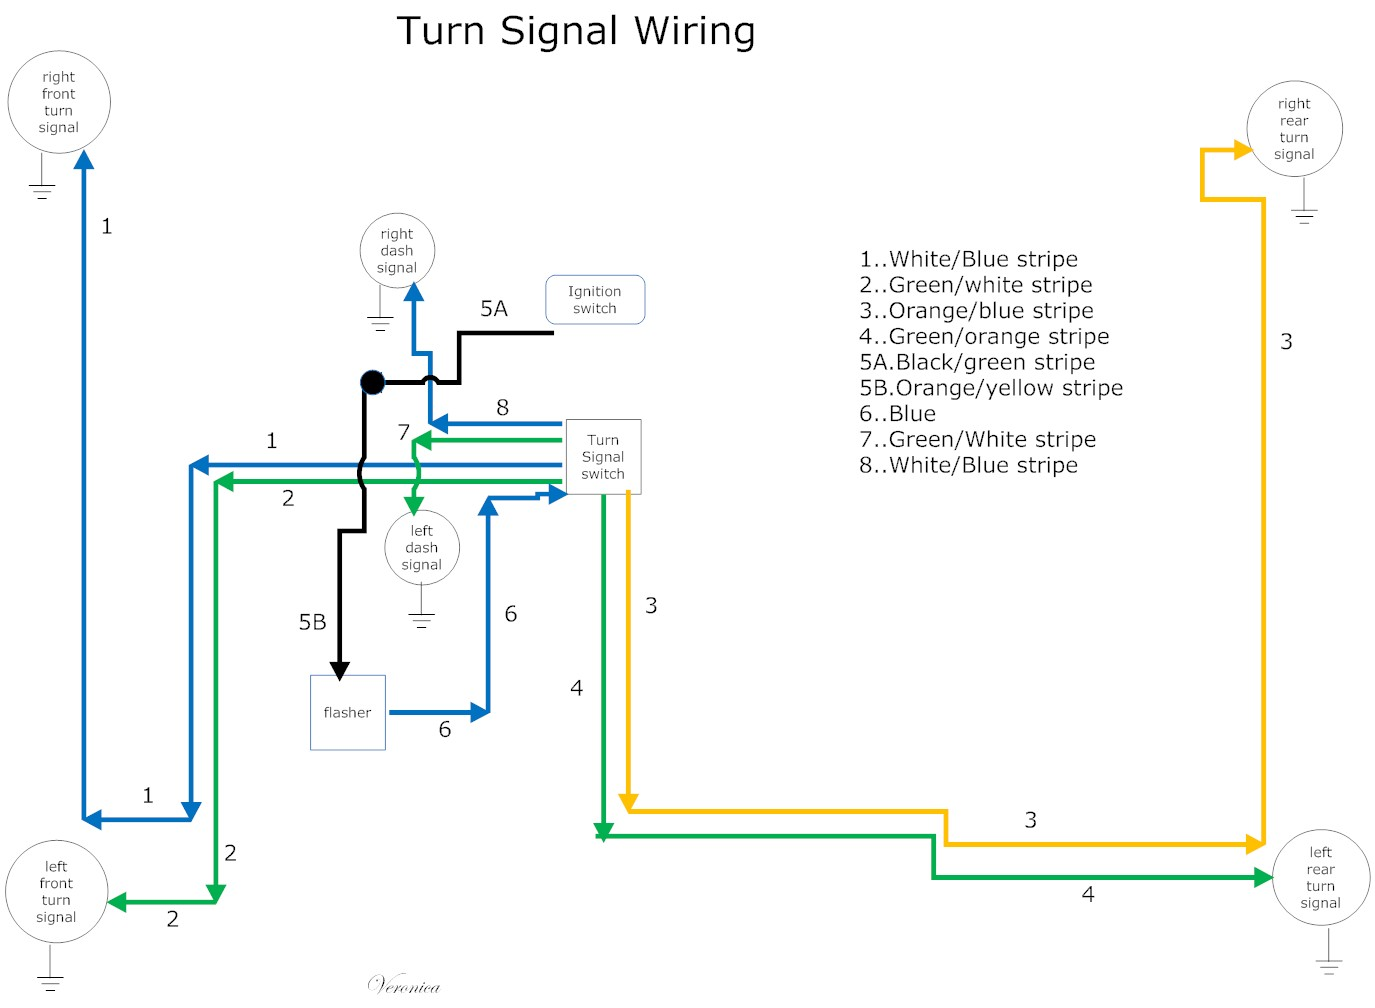 basic fuel gauge diagram, simple turn signal diagram, basic wiring for old trucks, turn signal switch diagram, chevy turn signal diagram, on basic turn signal ke wiring diagram